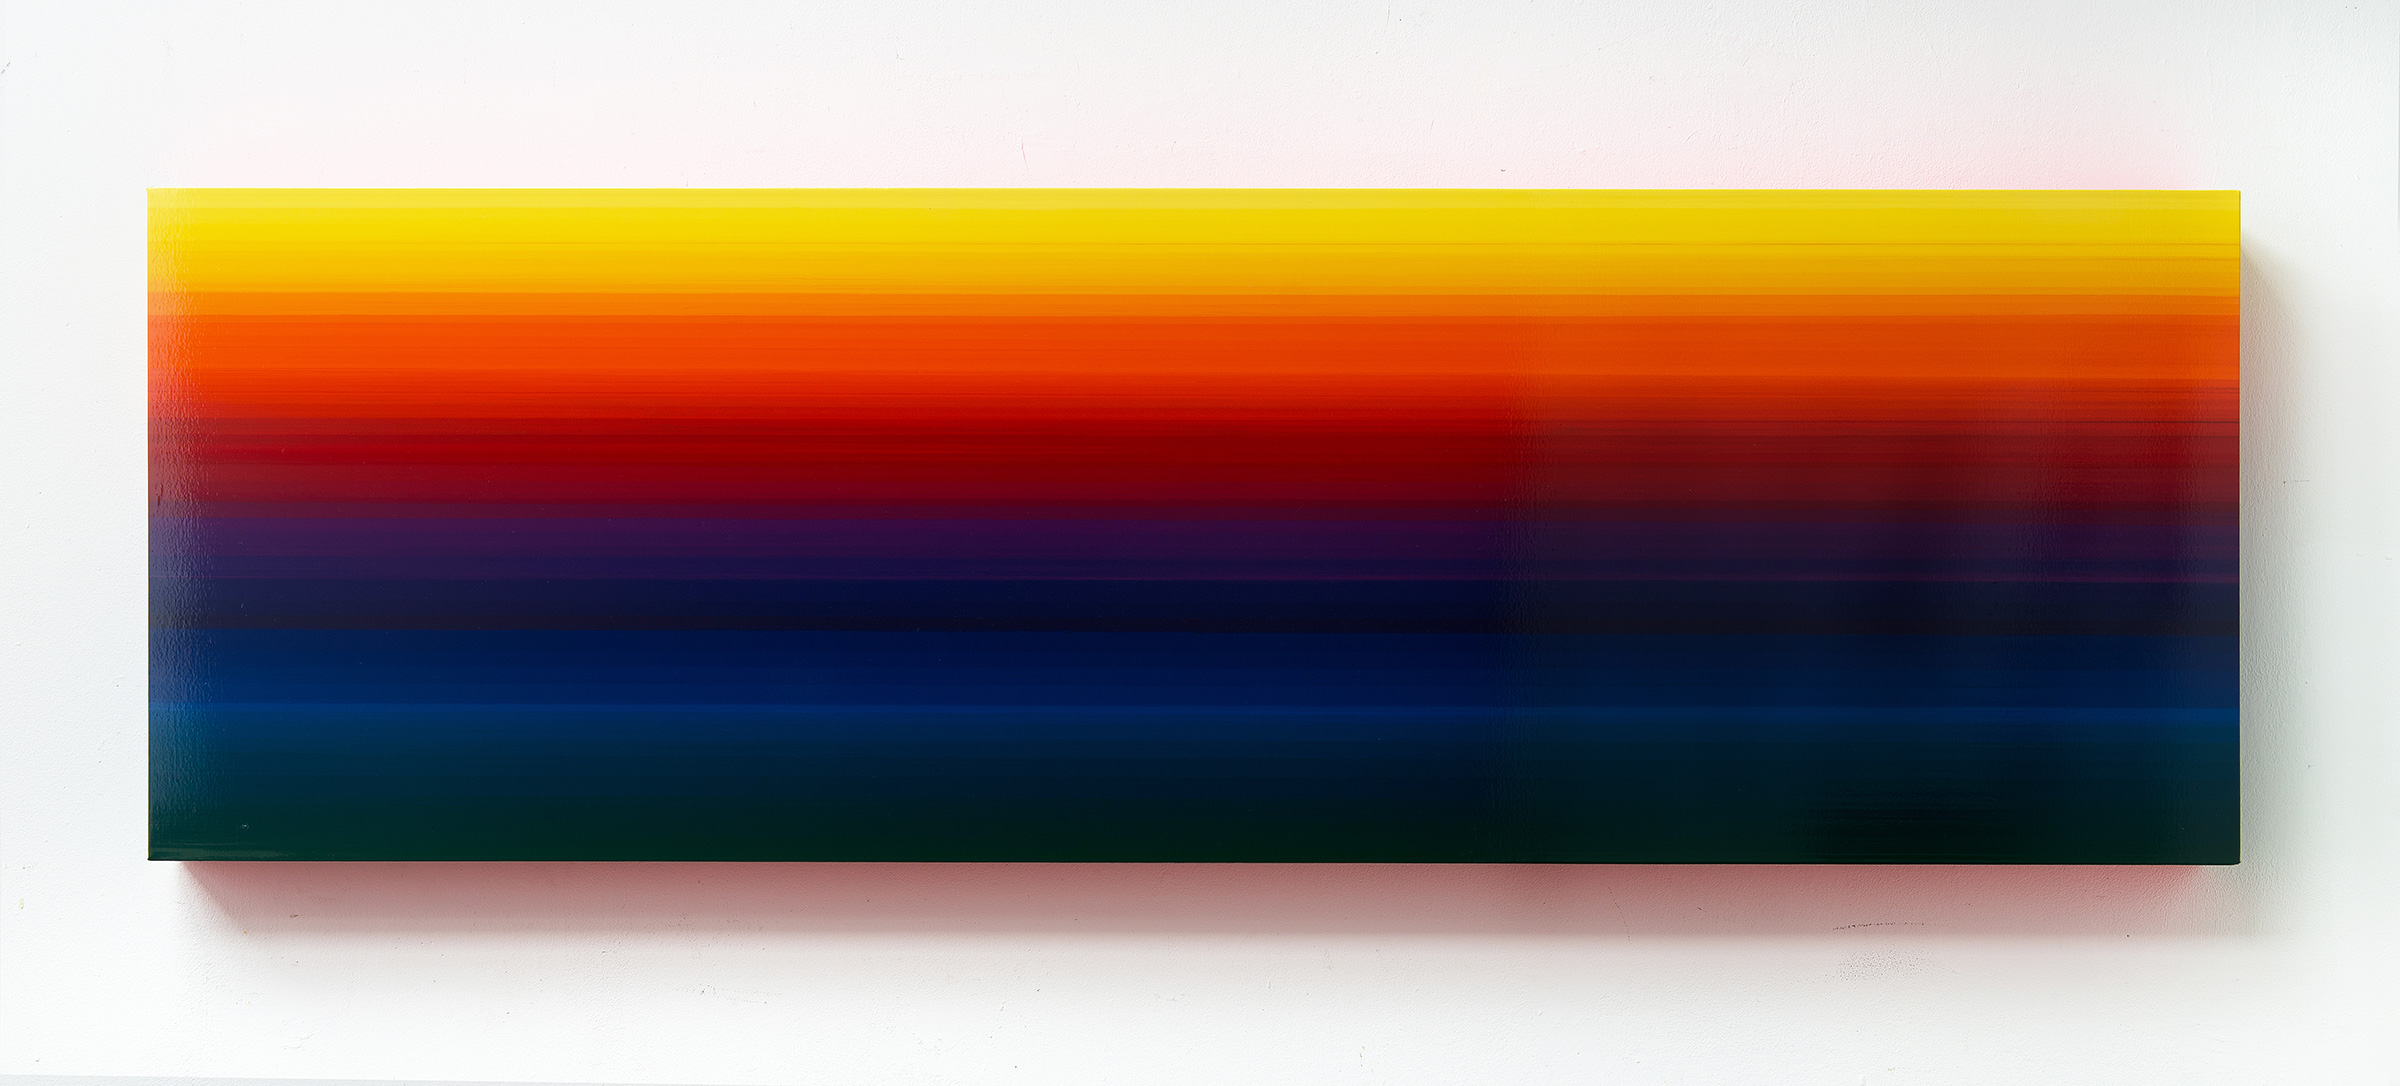 Technicolor Panorama-Radiant - Thierry Feuz - Leonhard's Gallery